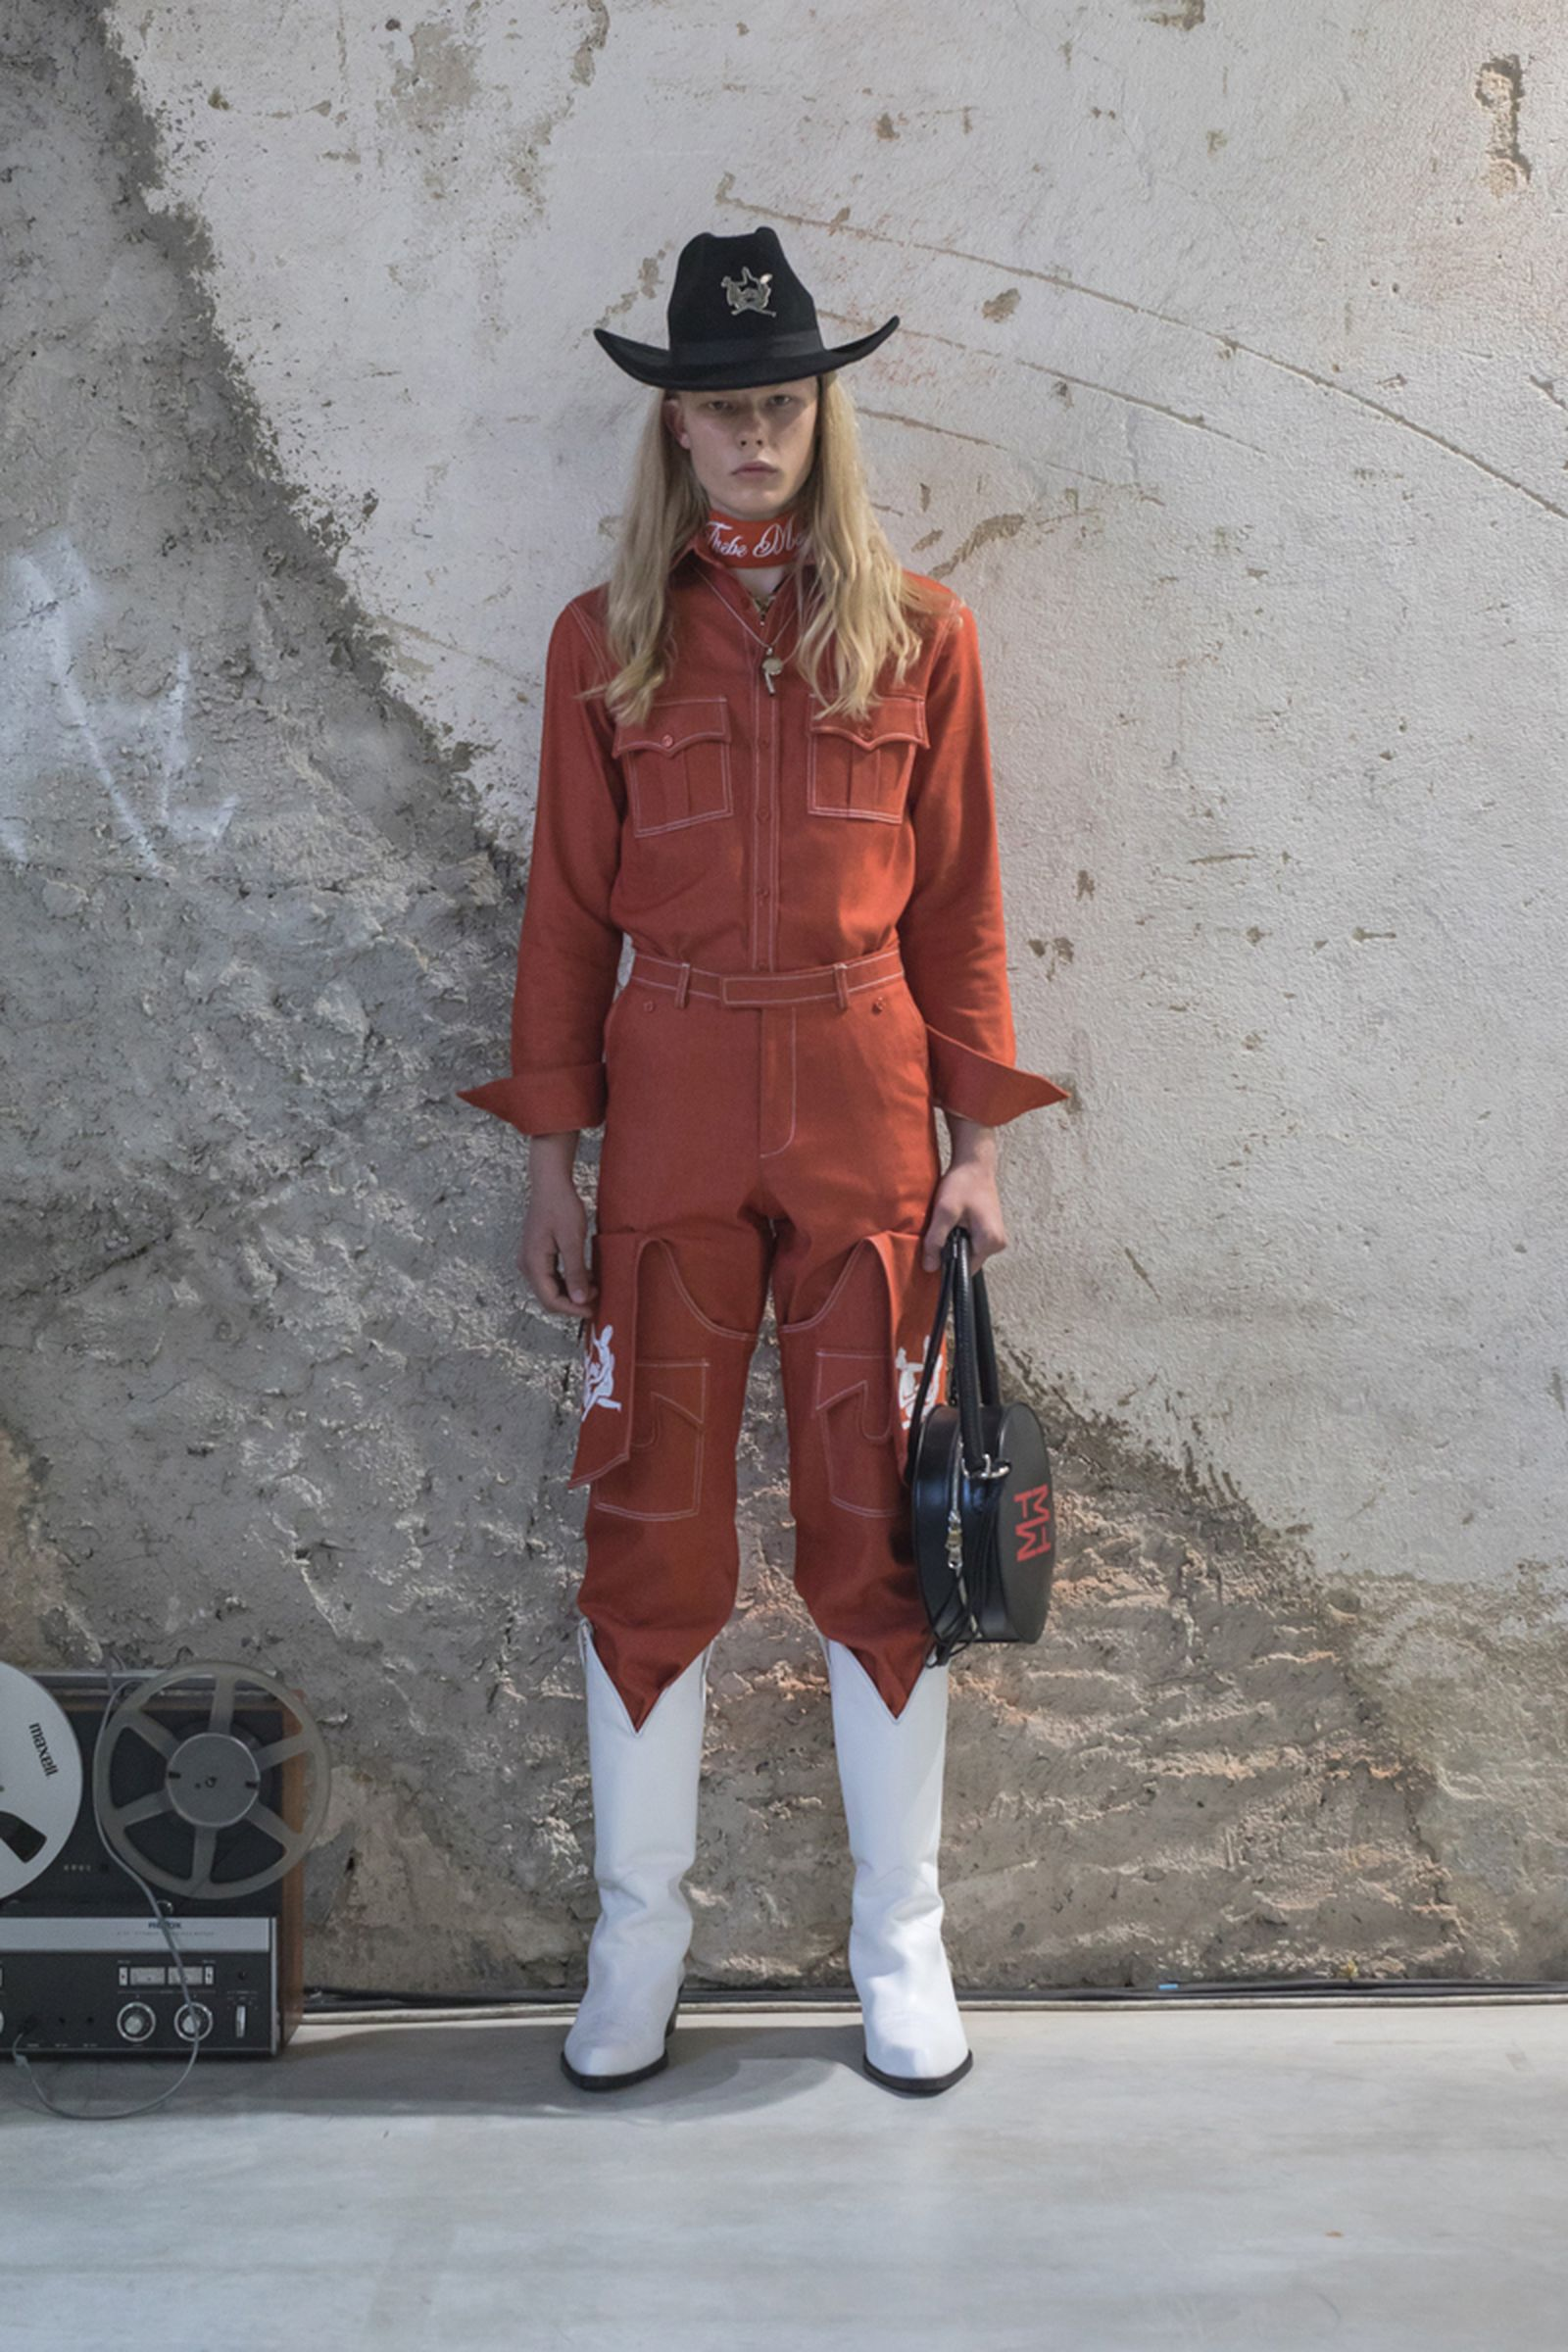 thebe-magugus-menswear-debut-at-pitti-is-everything-we-hoped-it-would-be-10